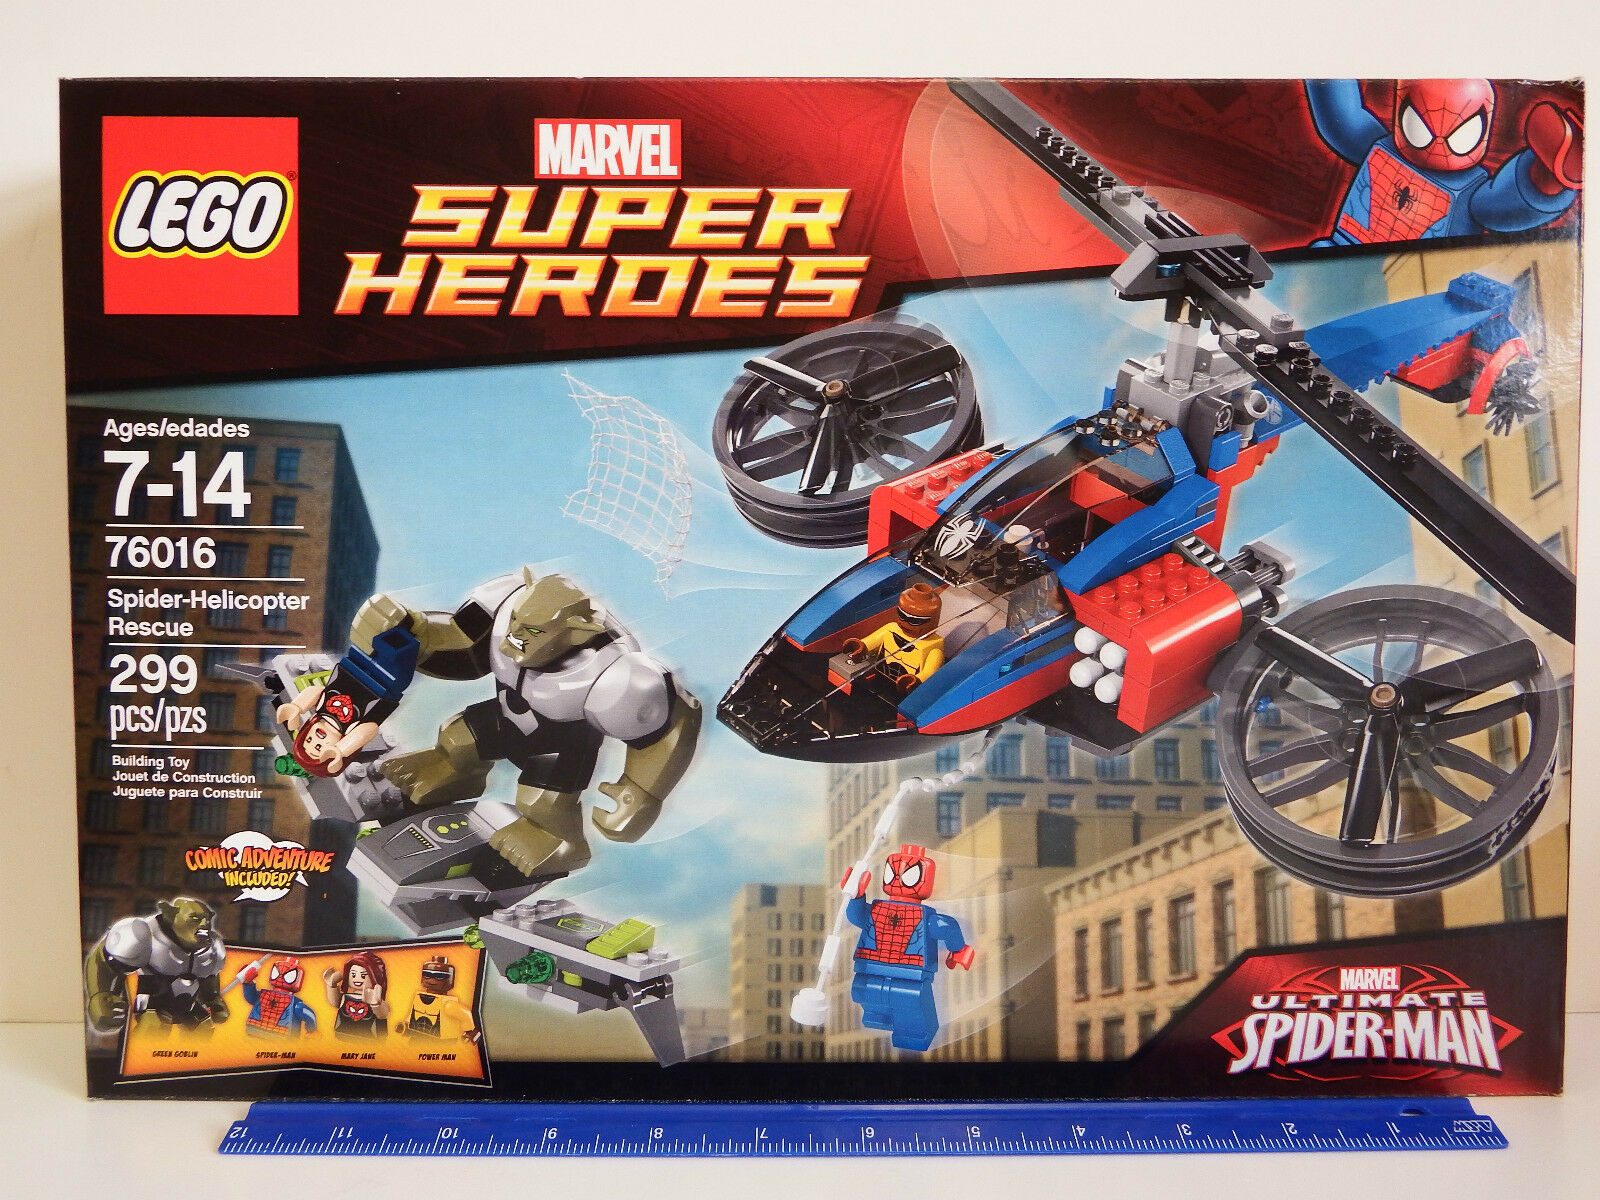 LEGO MARVEL Super Heroes 76016 Spider-Helicopter Rescue 299 pc set Age 7-14Y